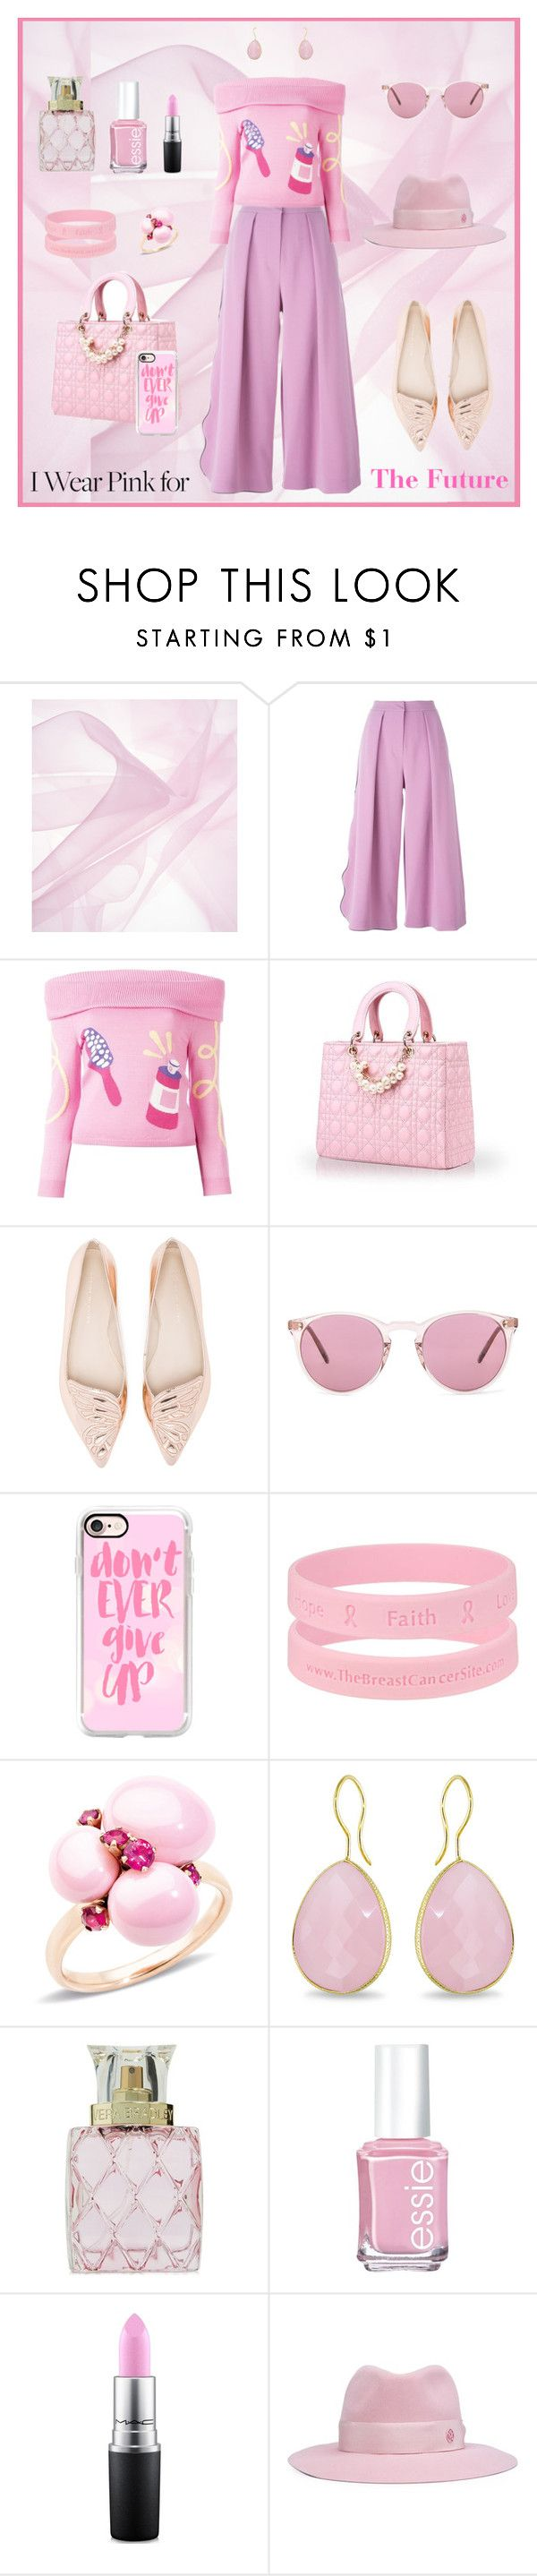 """The Pride in the Fight"" by krusie ❤ liked on Polyvore featuring Roksanda, Jeremy Scott, Sophia Webster, Oliver Peoples, Casetify, Pomellato, Ice, Vera Bradley, Essie and MAC Cosmetics"